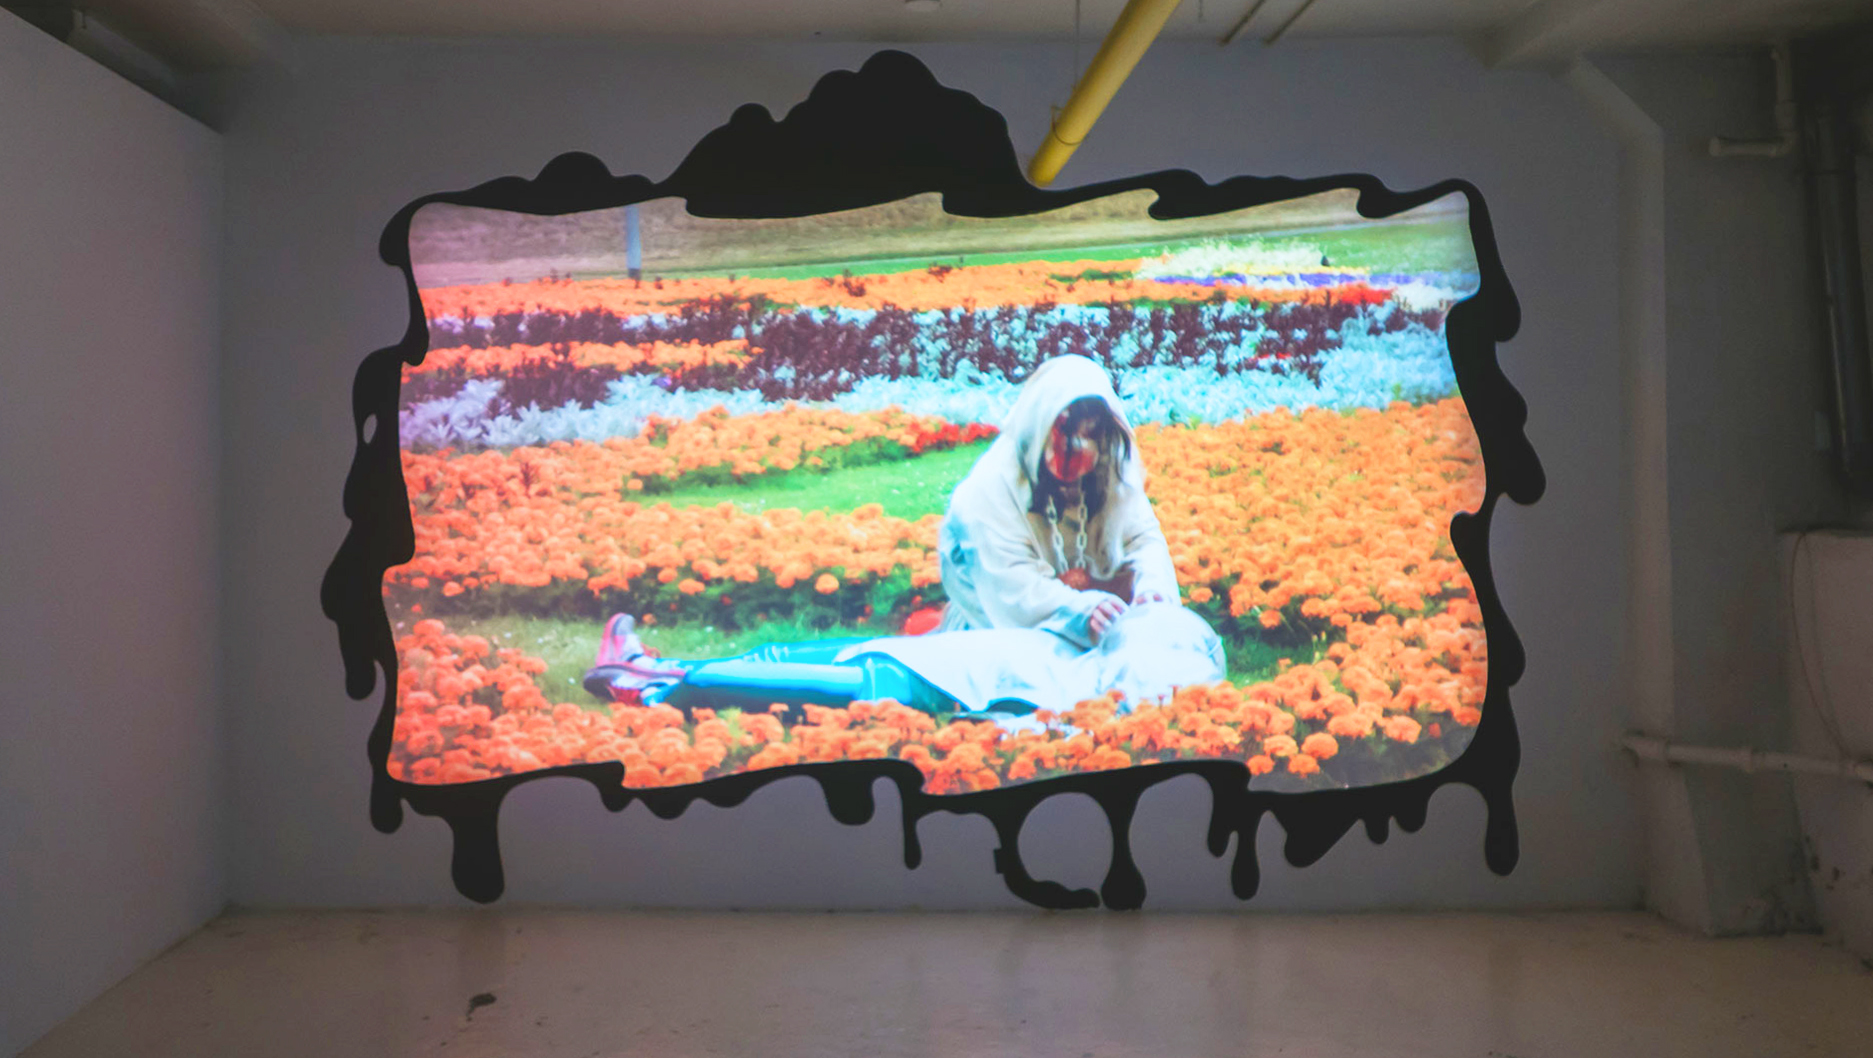 Video install of Mourning pf the Living Past by Inflatable Deities (19min. 2017)